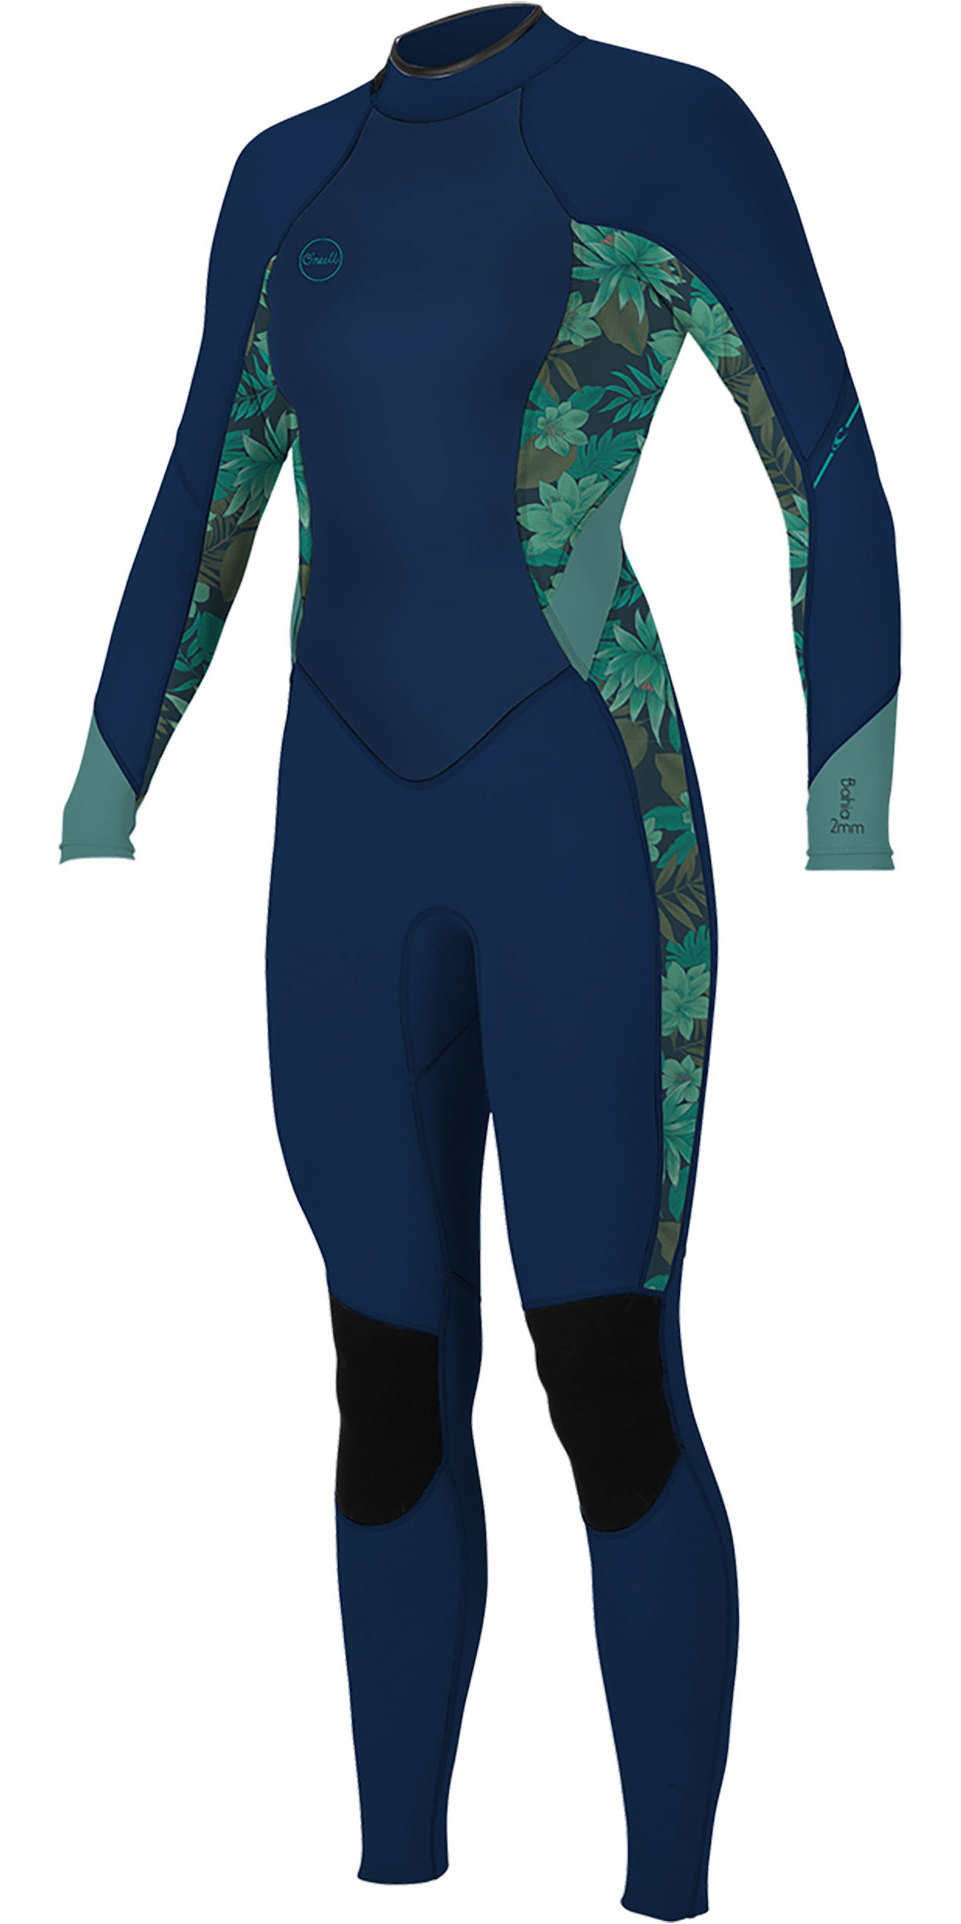 2019 O Neill Womens Bahia 3 2mm Back Zip Wetsuit Abyss Faro 5292 Wetsuits Womens Wetsuit Wetsuits Wetsuit